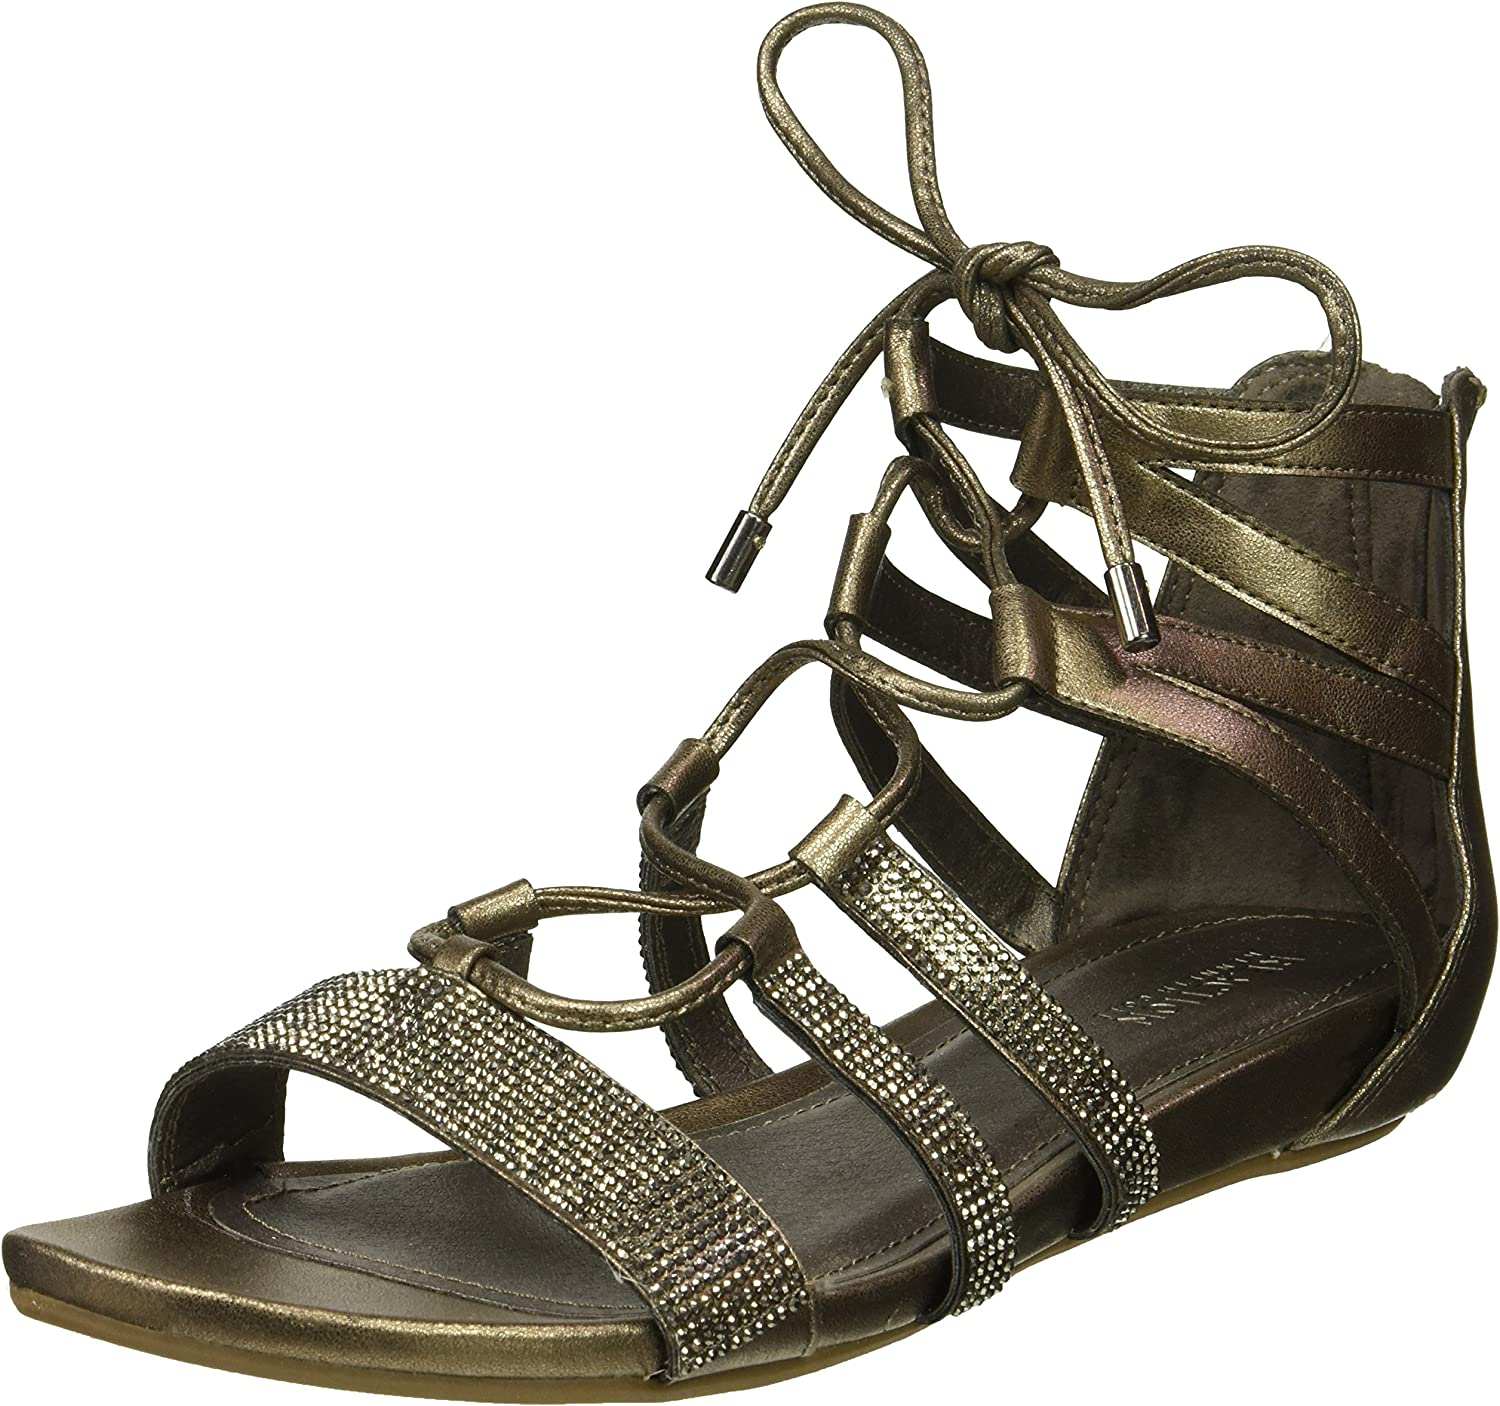 Kenneth Cole REACTION Womens 7 Lost Look Gladiator Laceup Sandal Sandal